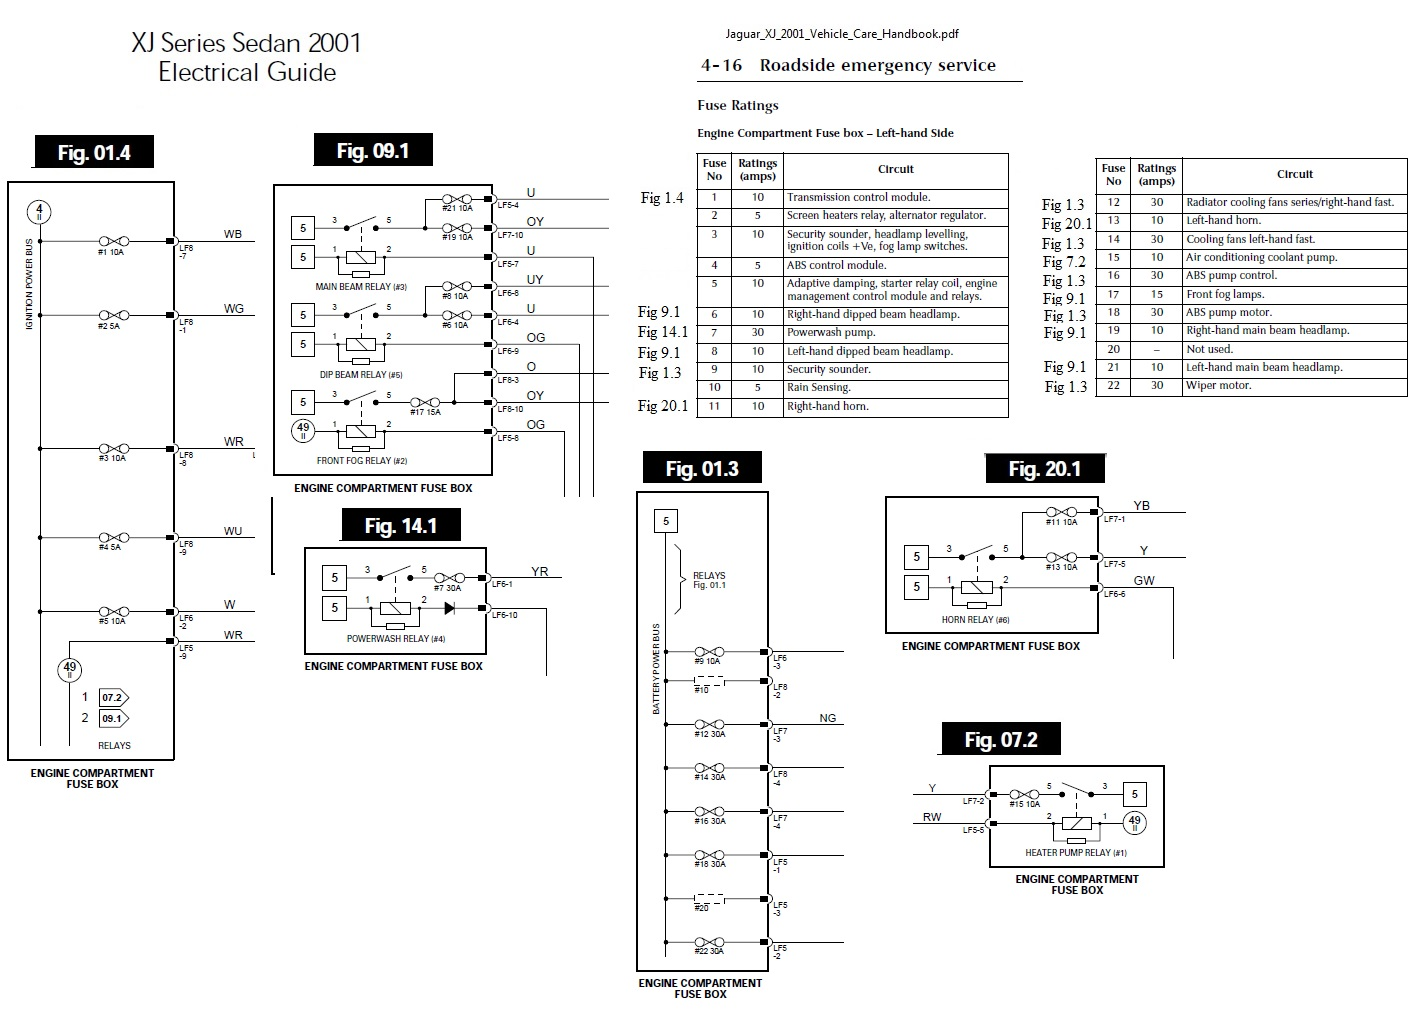 1998 Xjr Fuse Box Diagram : 25 Wiring Diagram Images